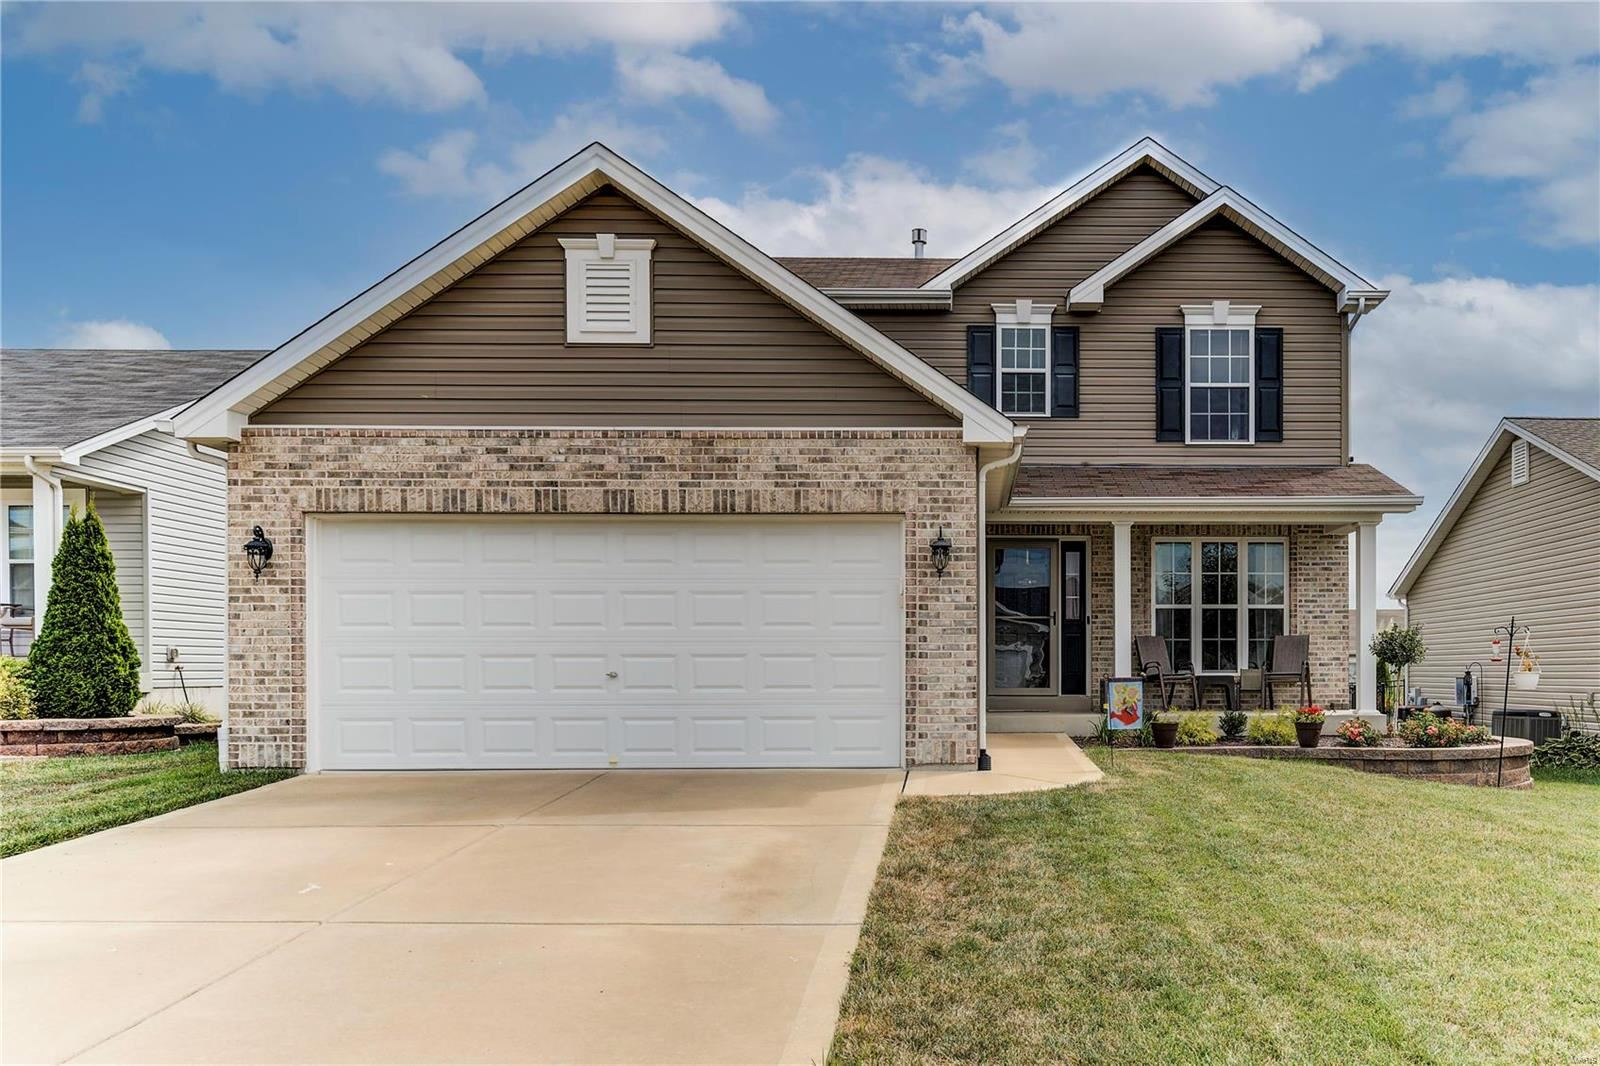 Photo for 606 Lazy River Court, OFallon, MO 63366 (MLS # 21060409)